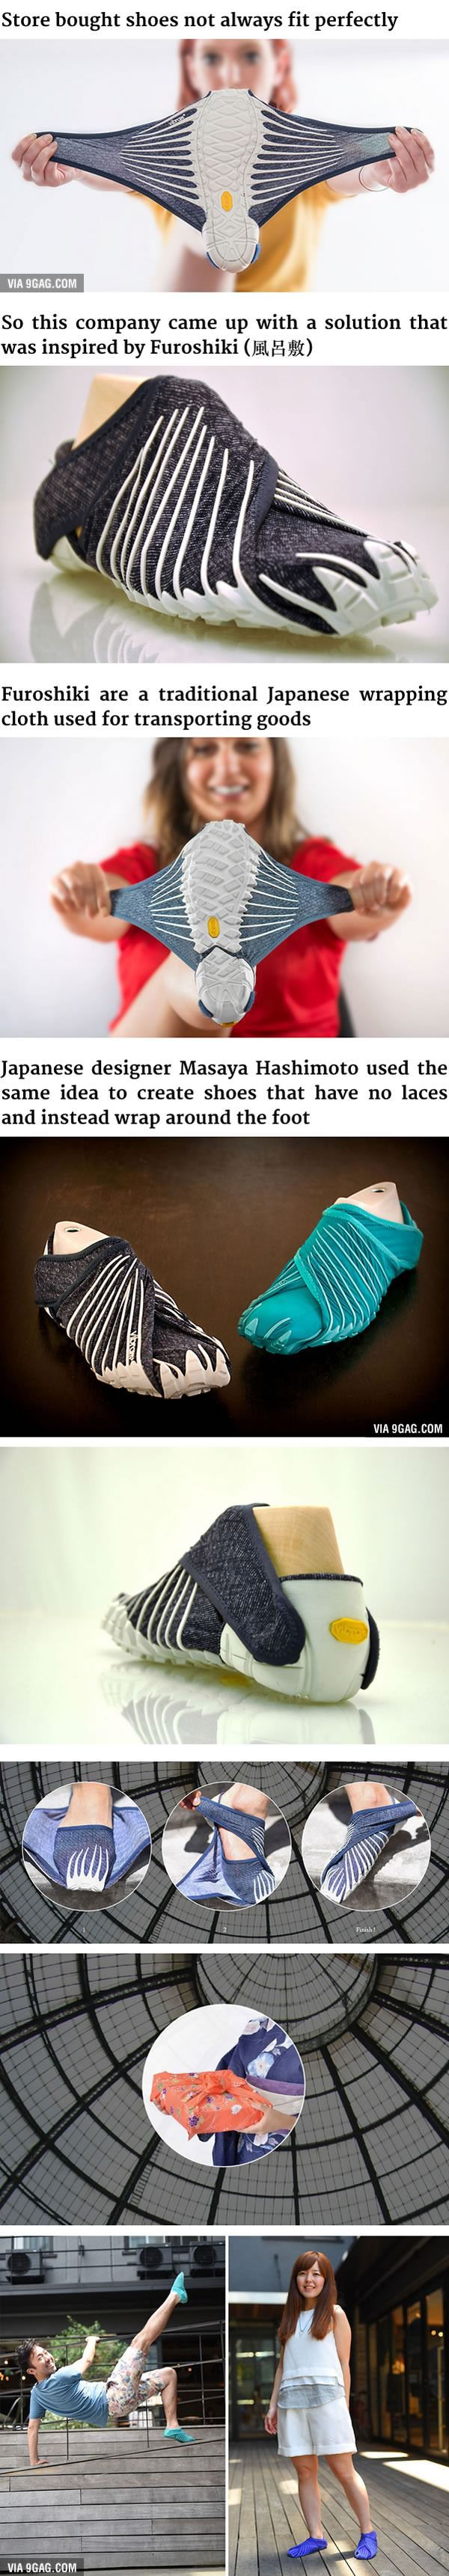 These New Japanese-Inspired Shoes Can Wrap Around Your Feet PARECE UNA MANTARRAYA ,YA ME VERE ENCARAMADA EN ELLOS ;) ;)